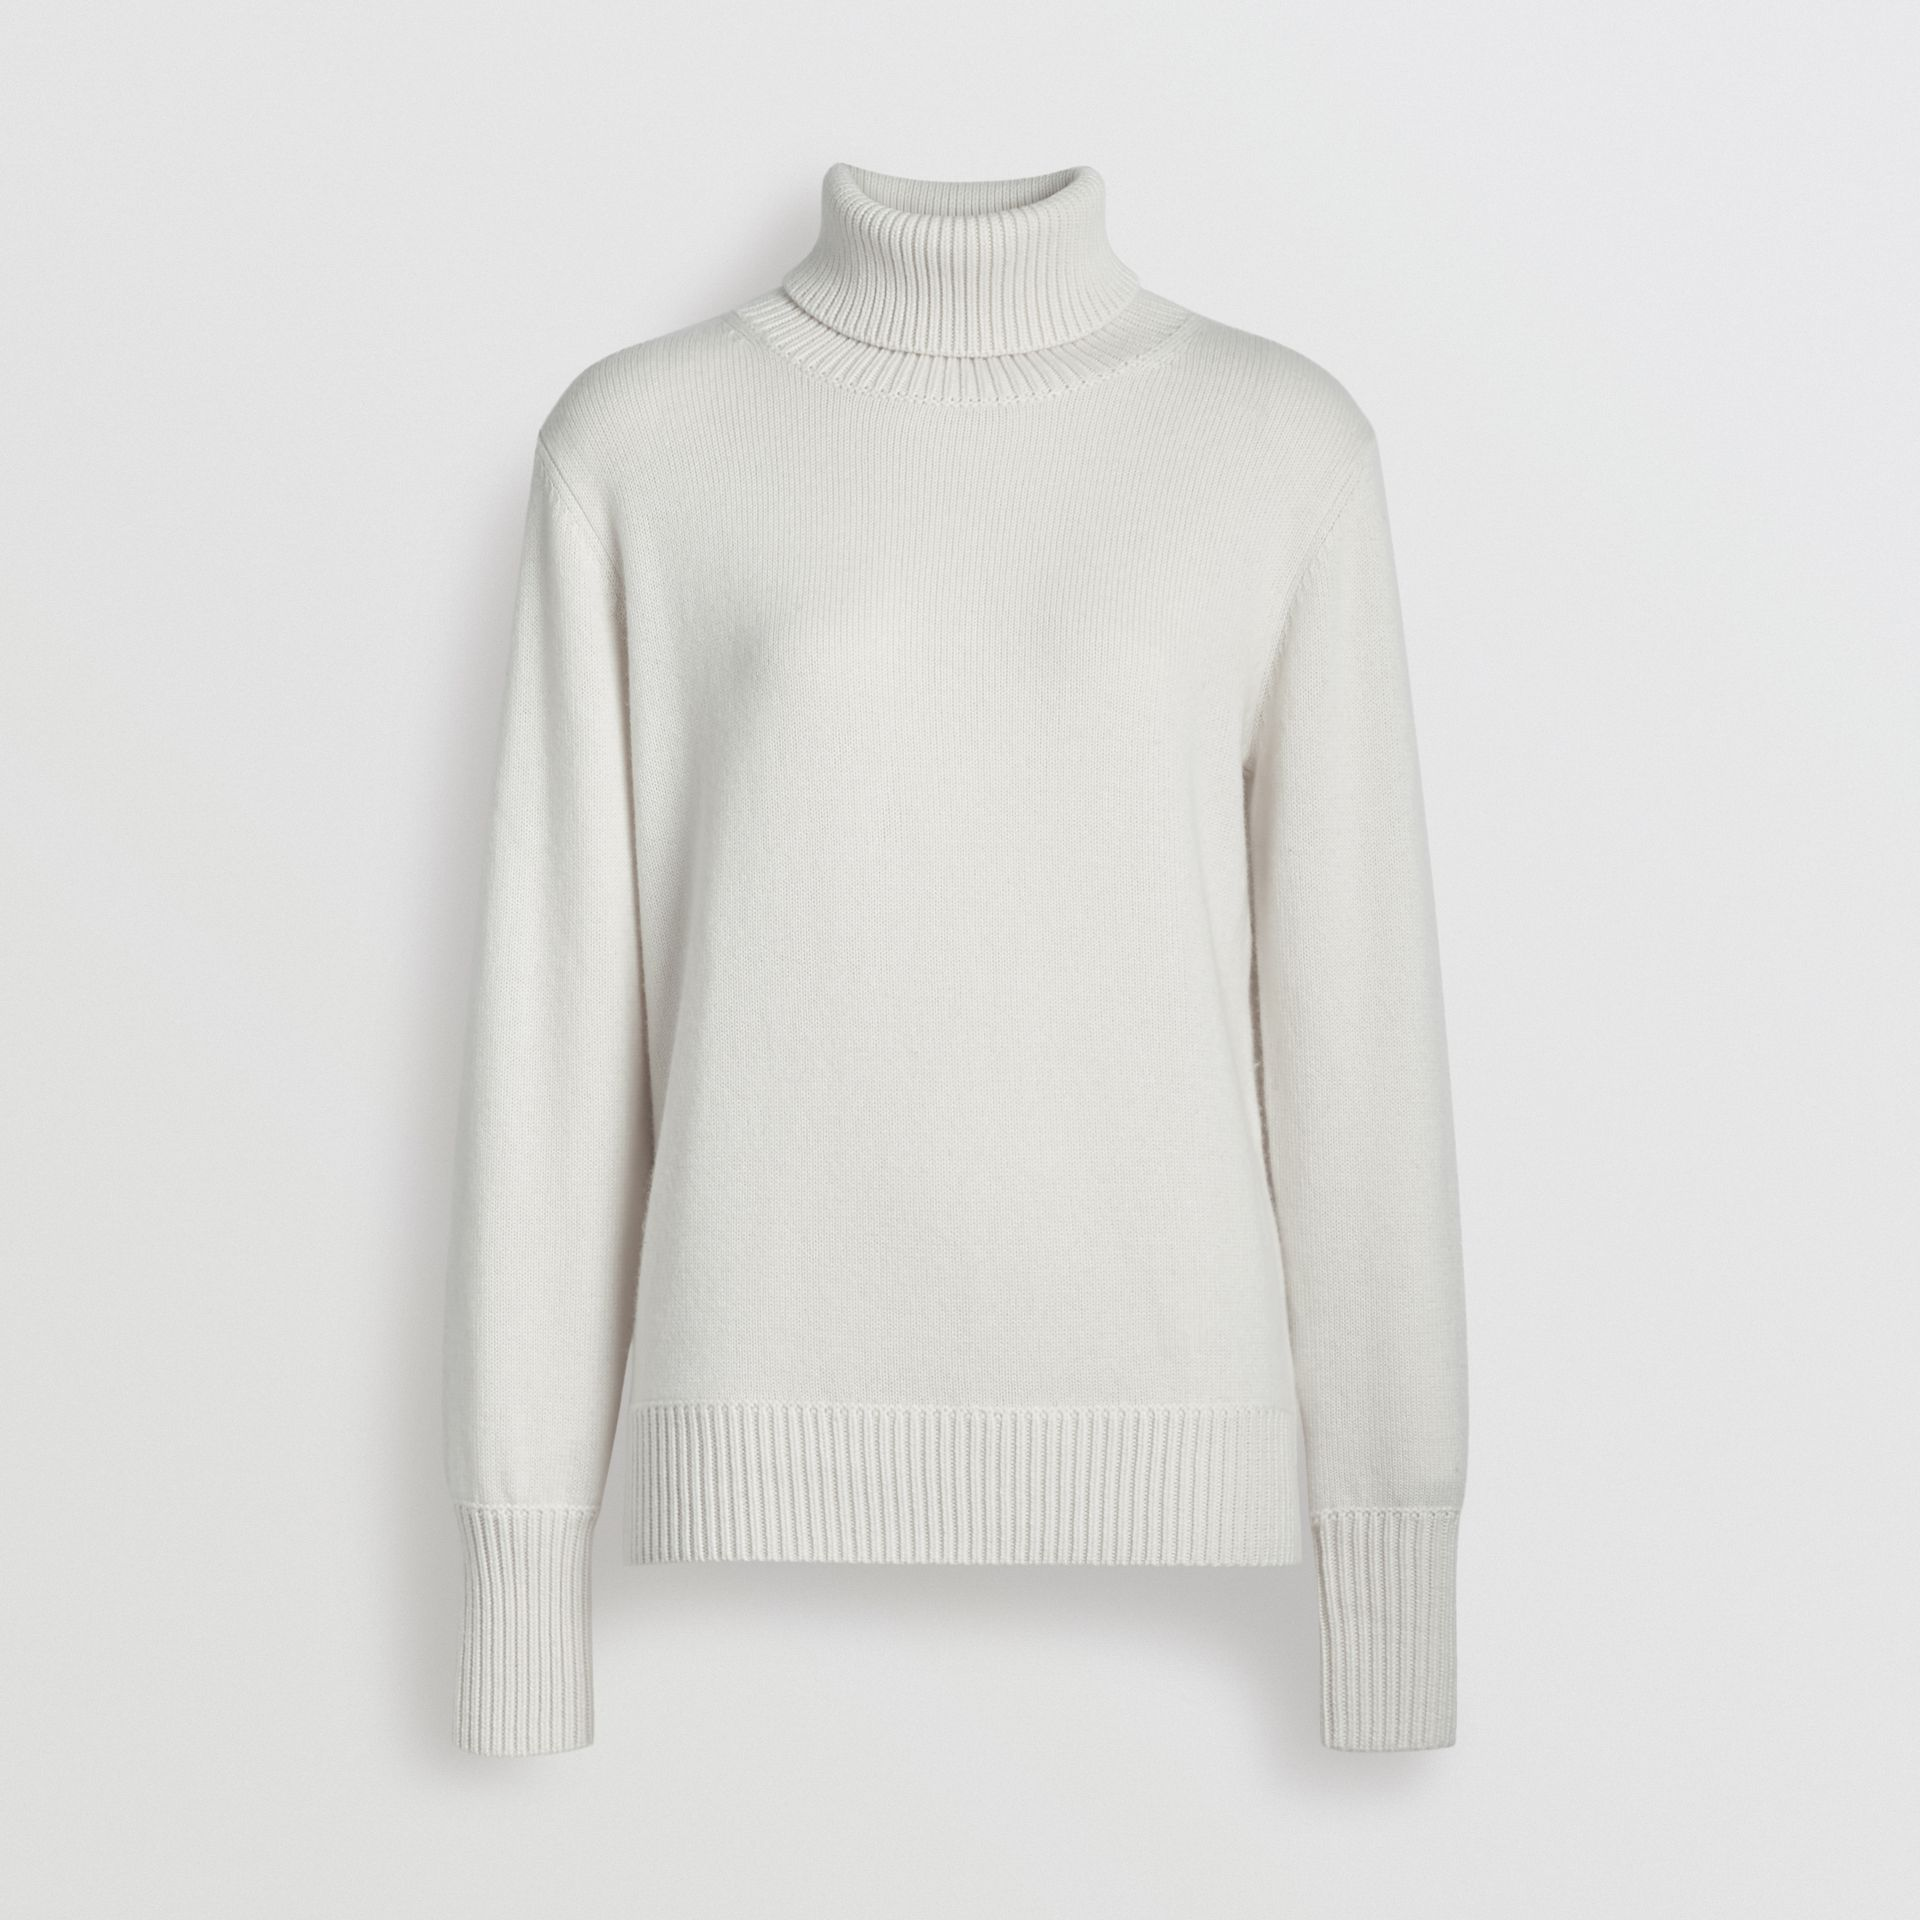 Archive Logo Appliqué Cashmere Roll-neck Sweater in White - Women | Burberry - gallery image 3